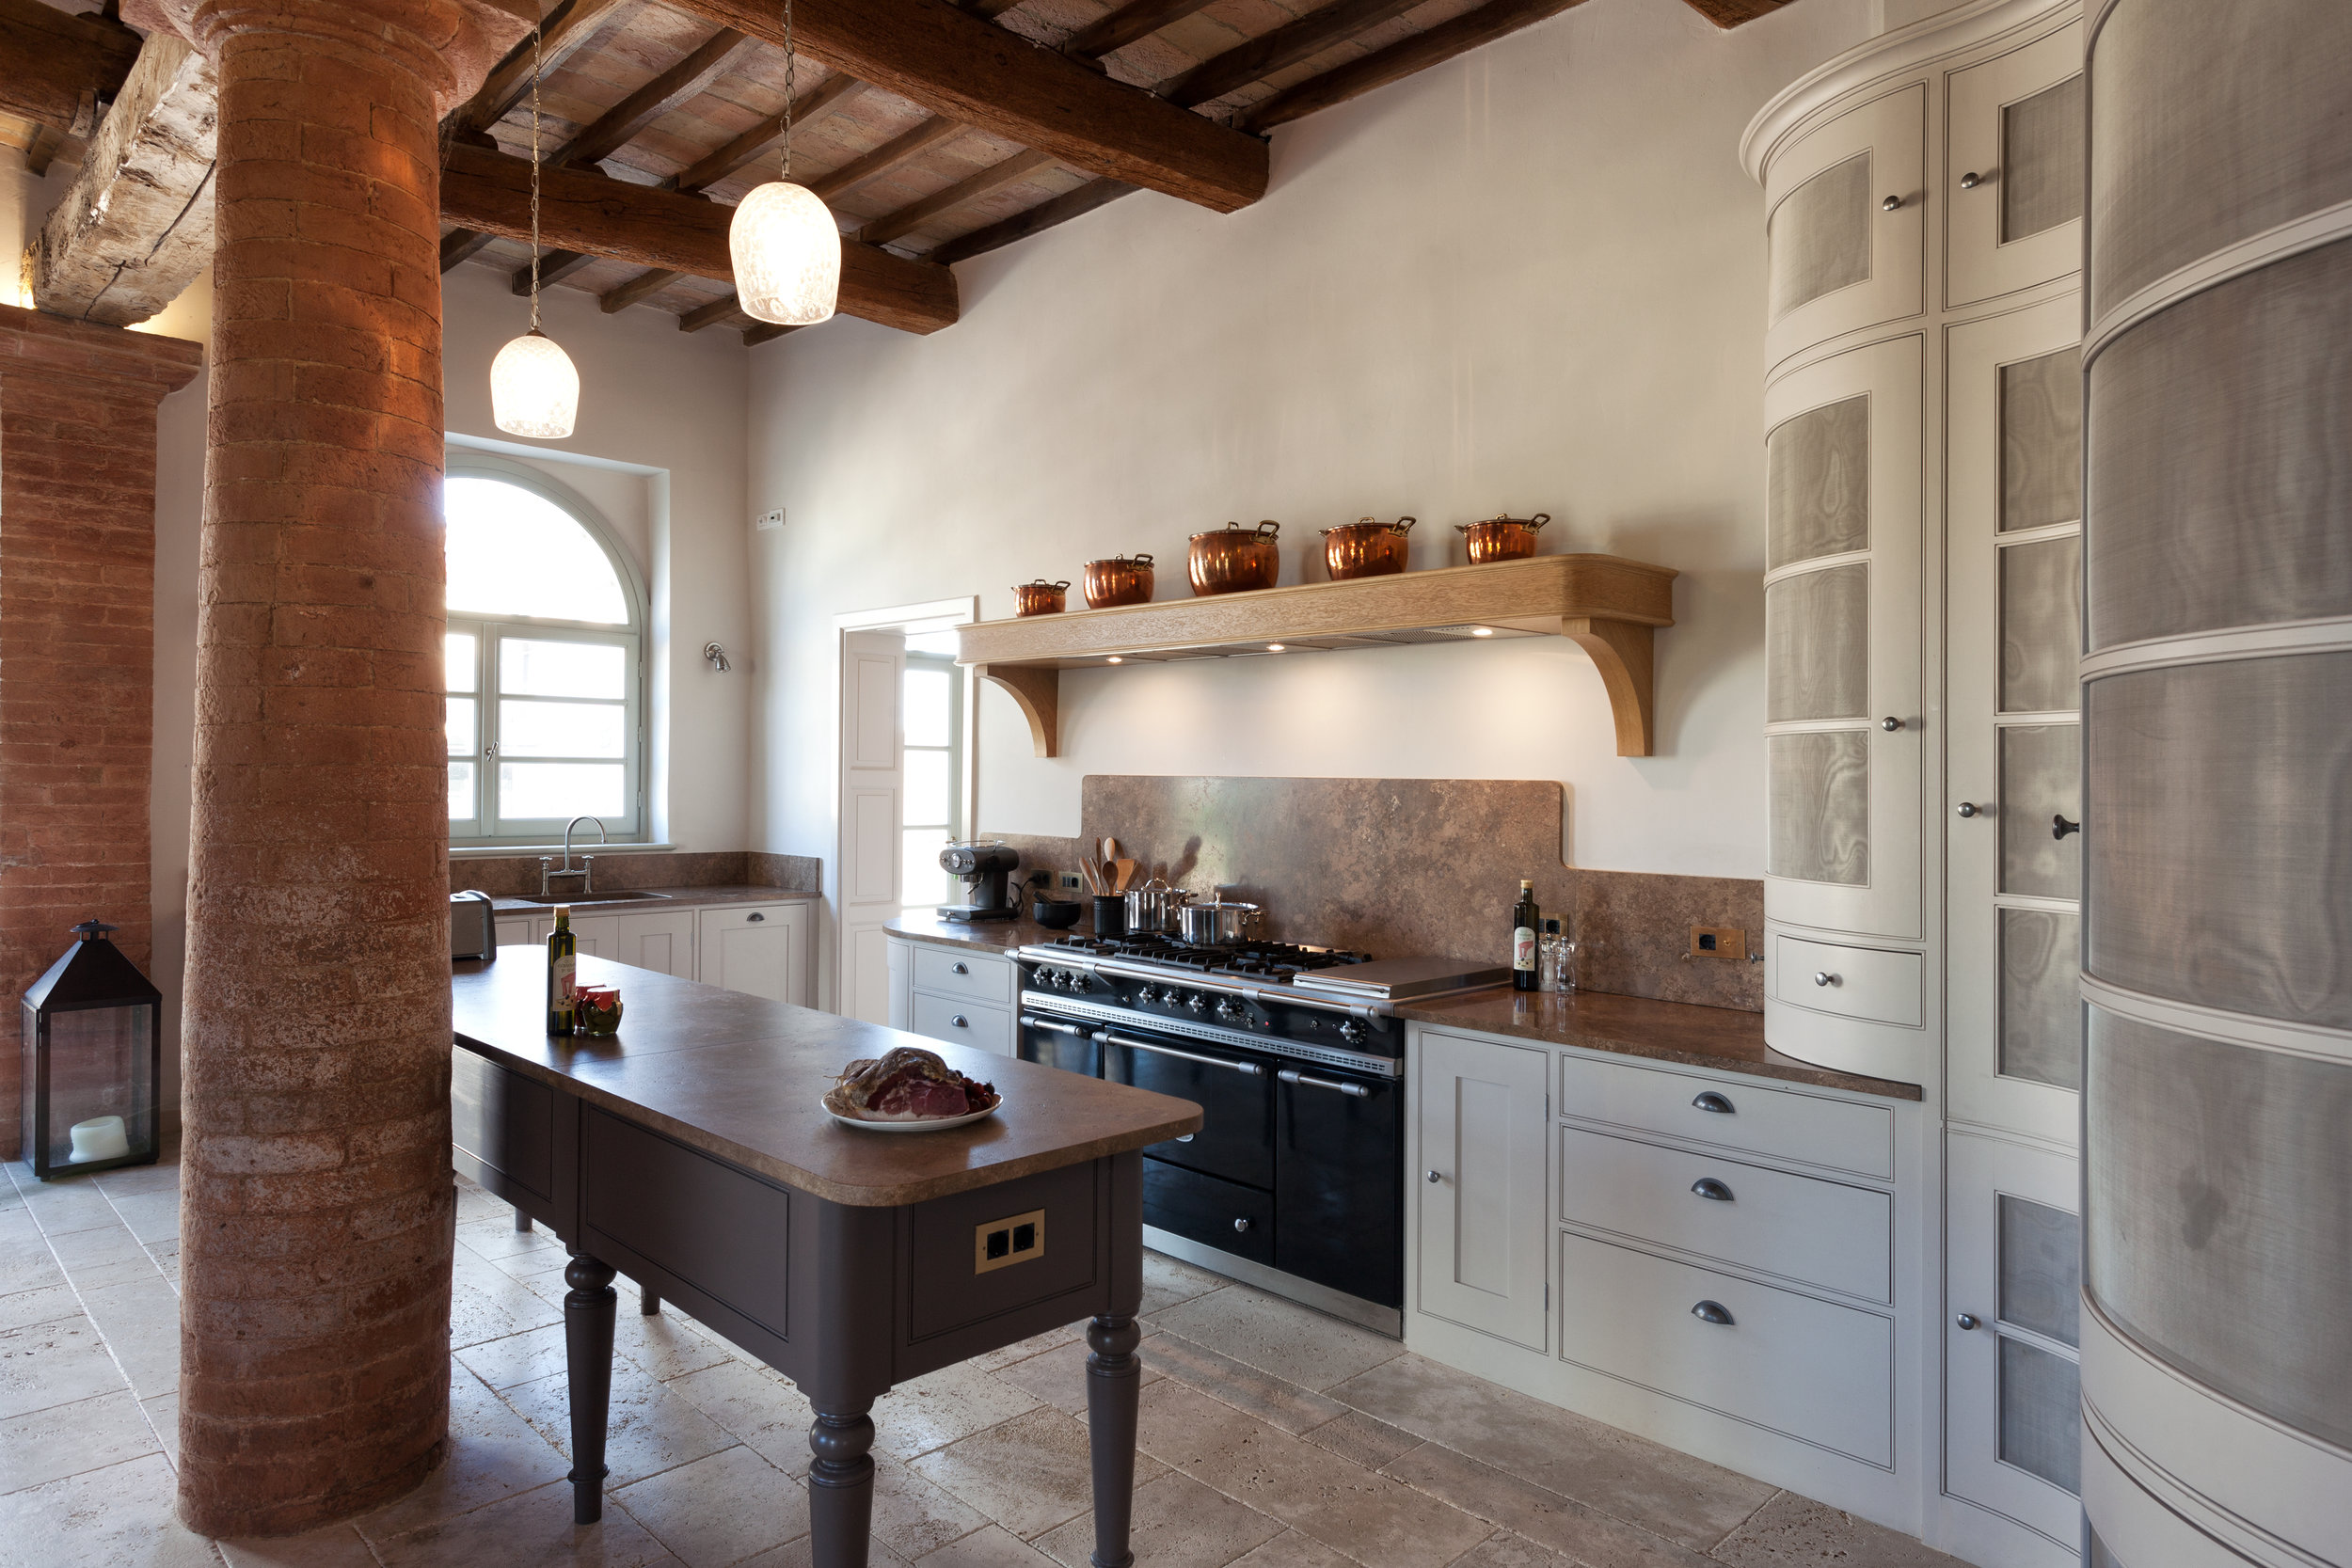 This beautiful hand crafted kitchen sits beautifully in this ancient villa